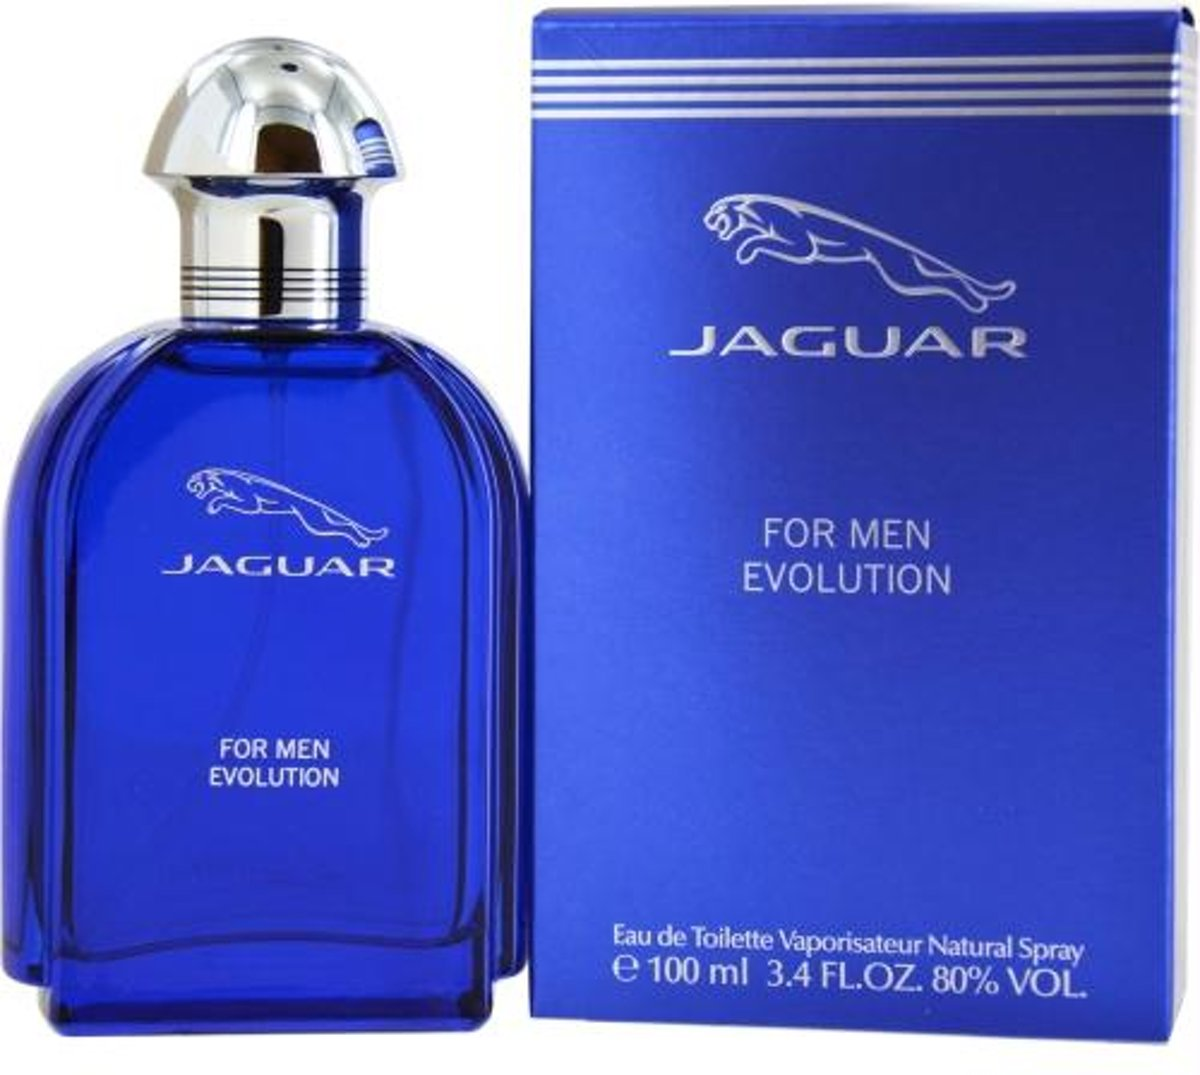 Jaguar Eau De Toilette Evolution 100 ml - Voor Mannen